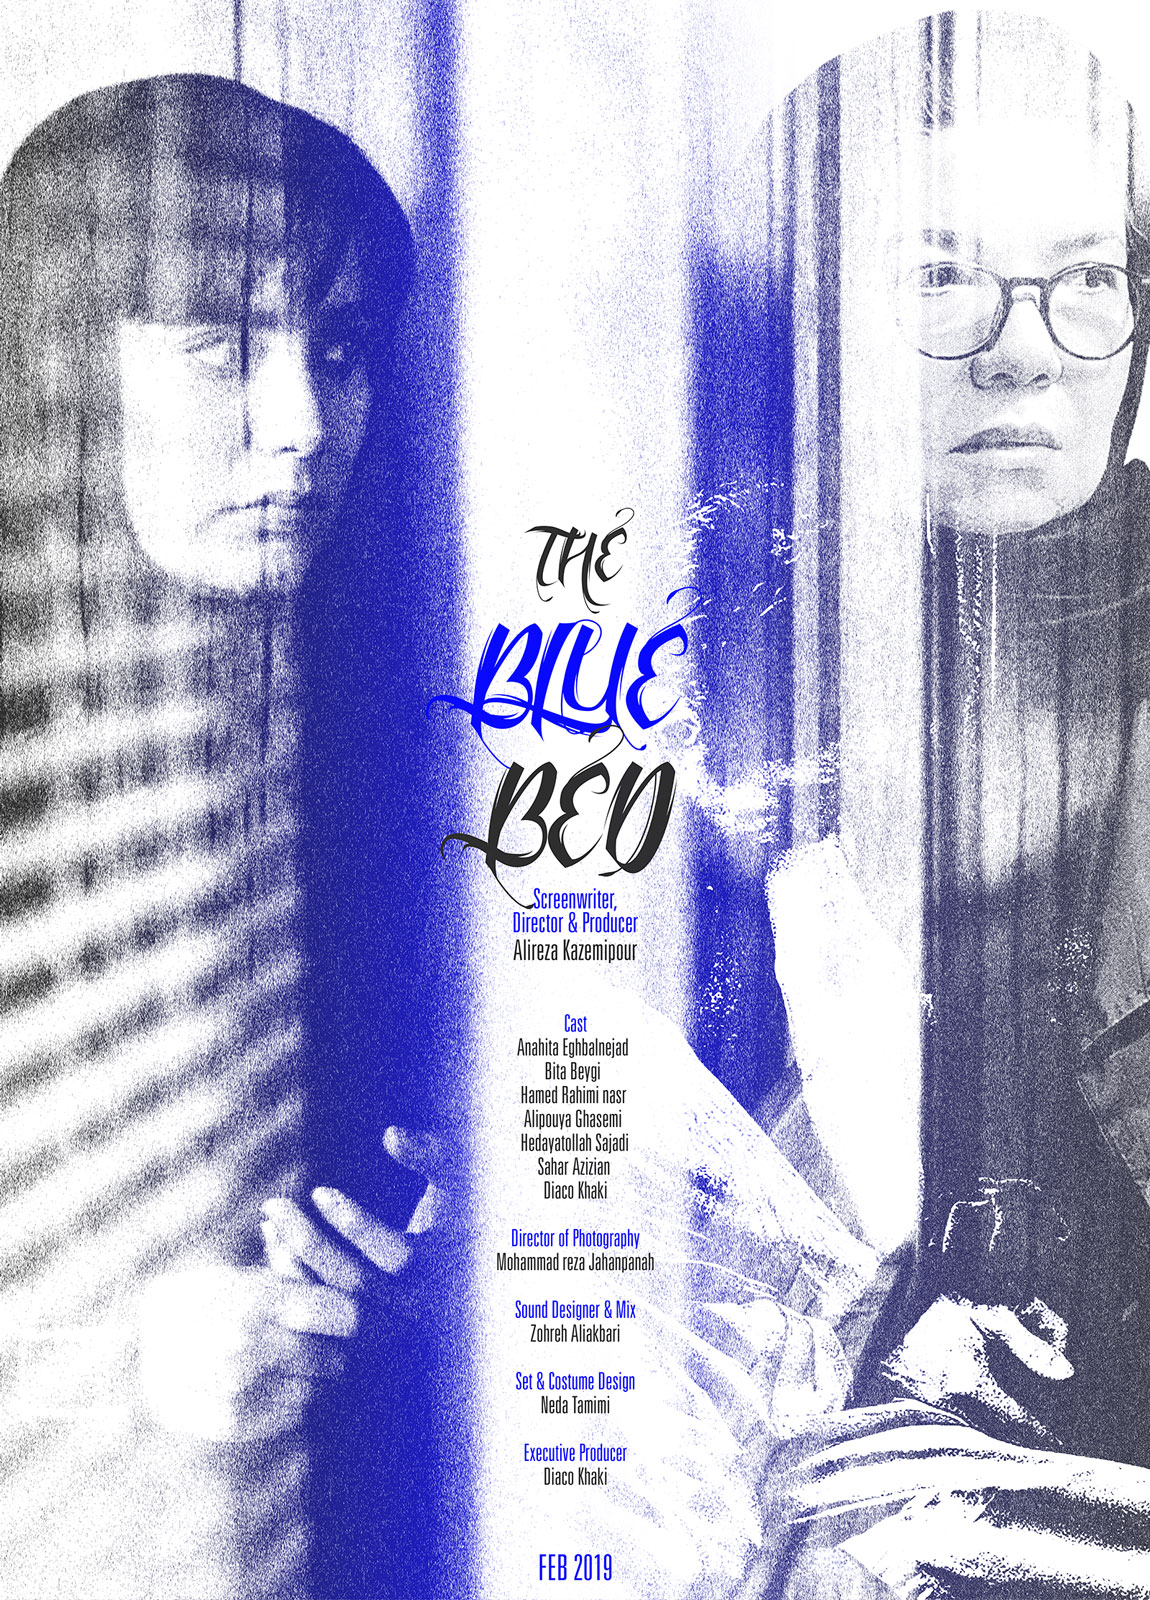 The Blue Bed